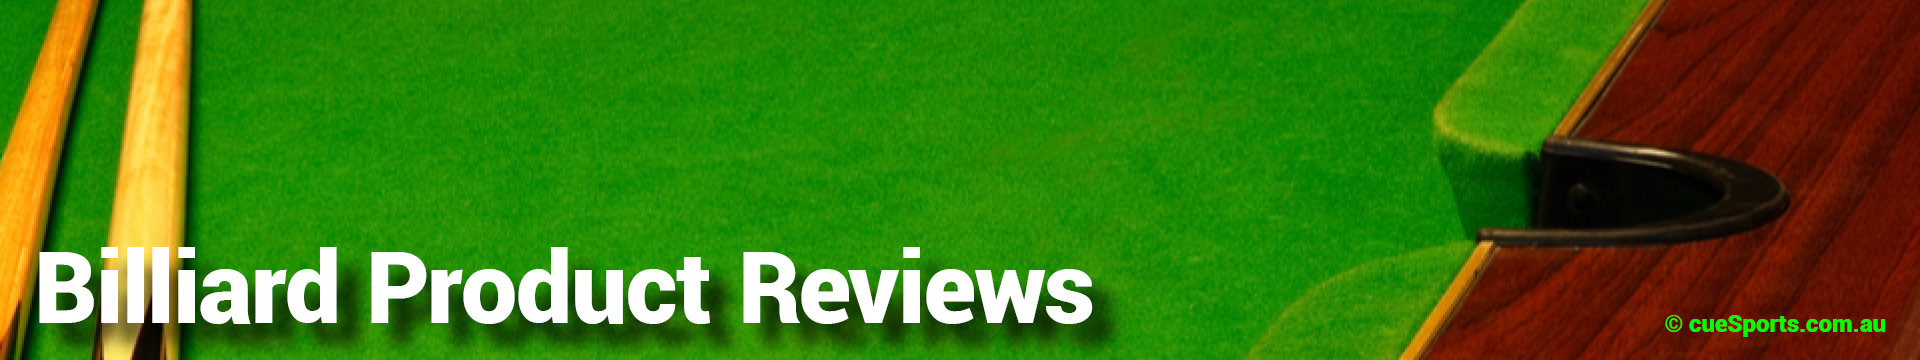 Billiard Product Reviews